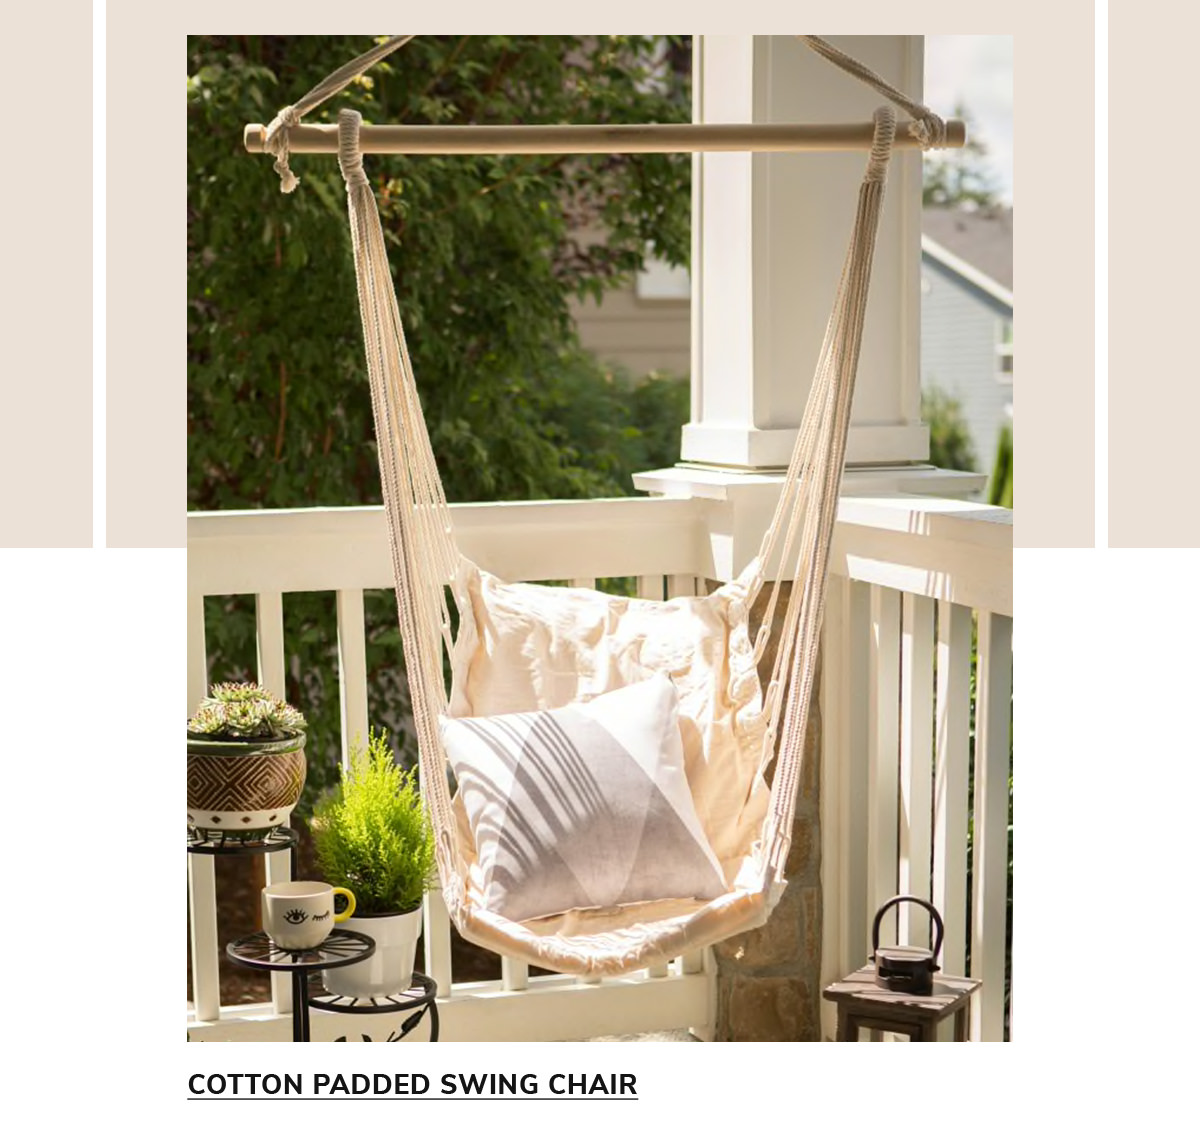 Cotton Padded Swing Chair   SHOP NOW